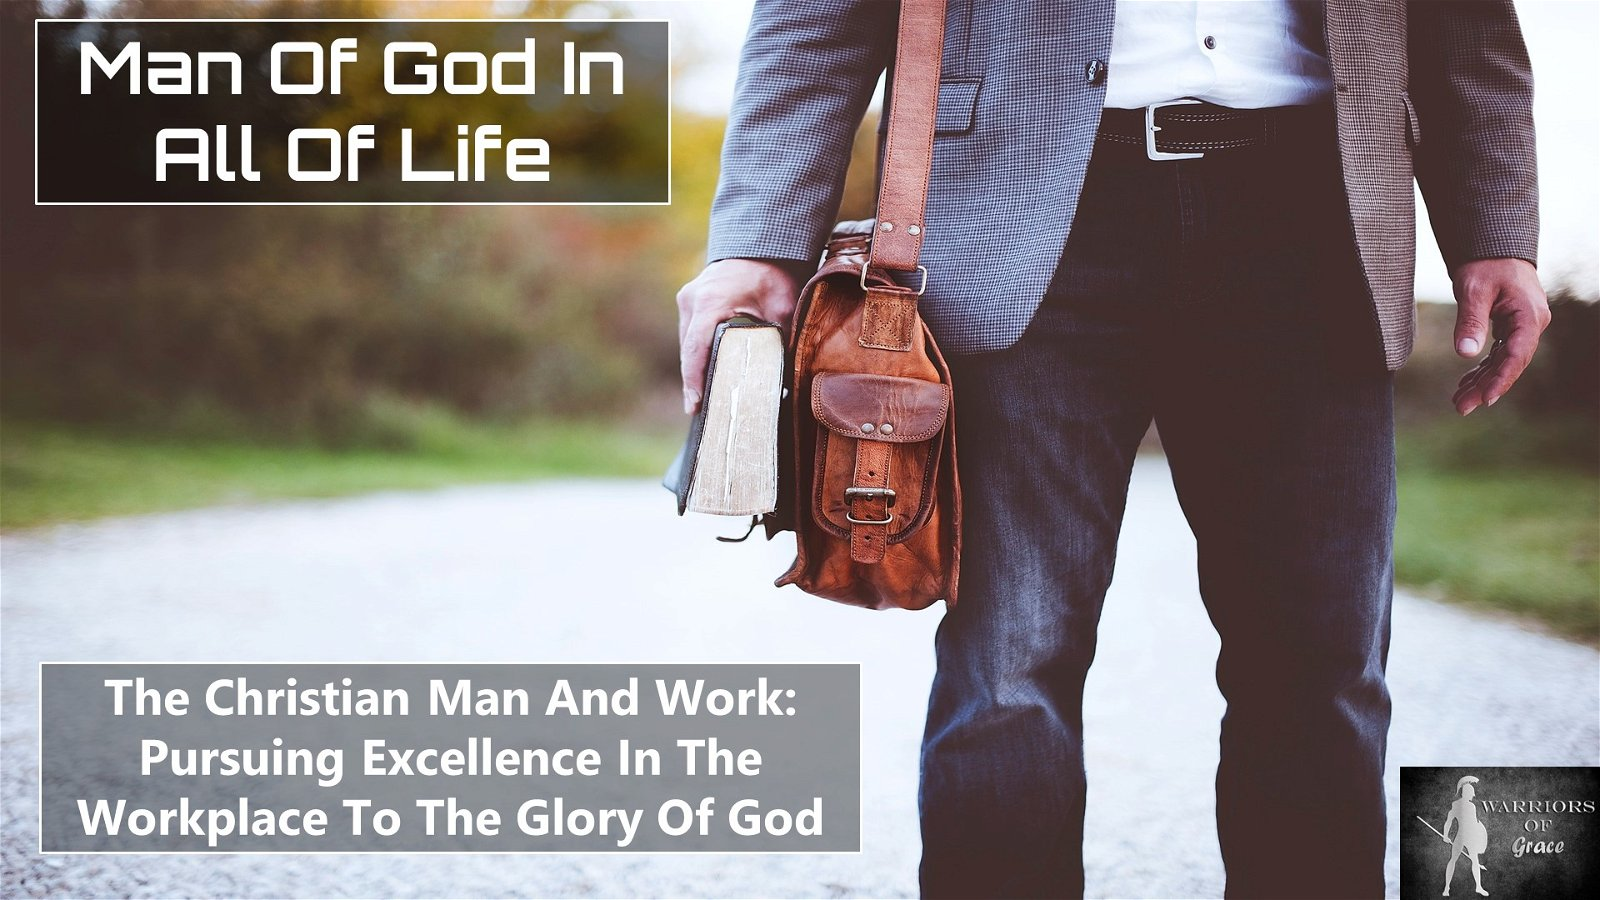 The Christian Man And Citizenship: Living Wisely In-Between The Times And Honoring The Lord 1